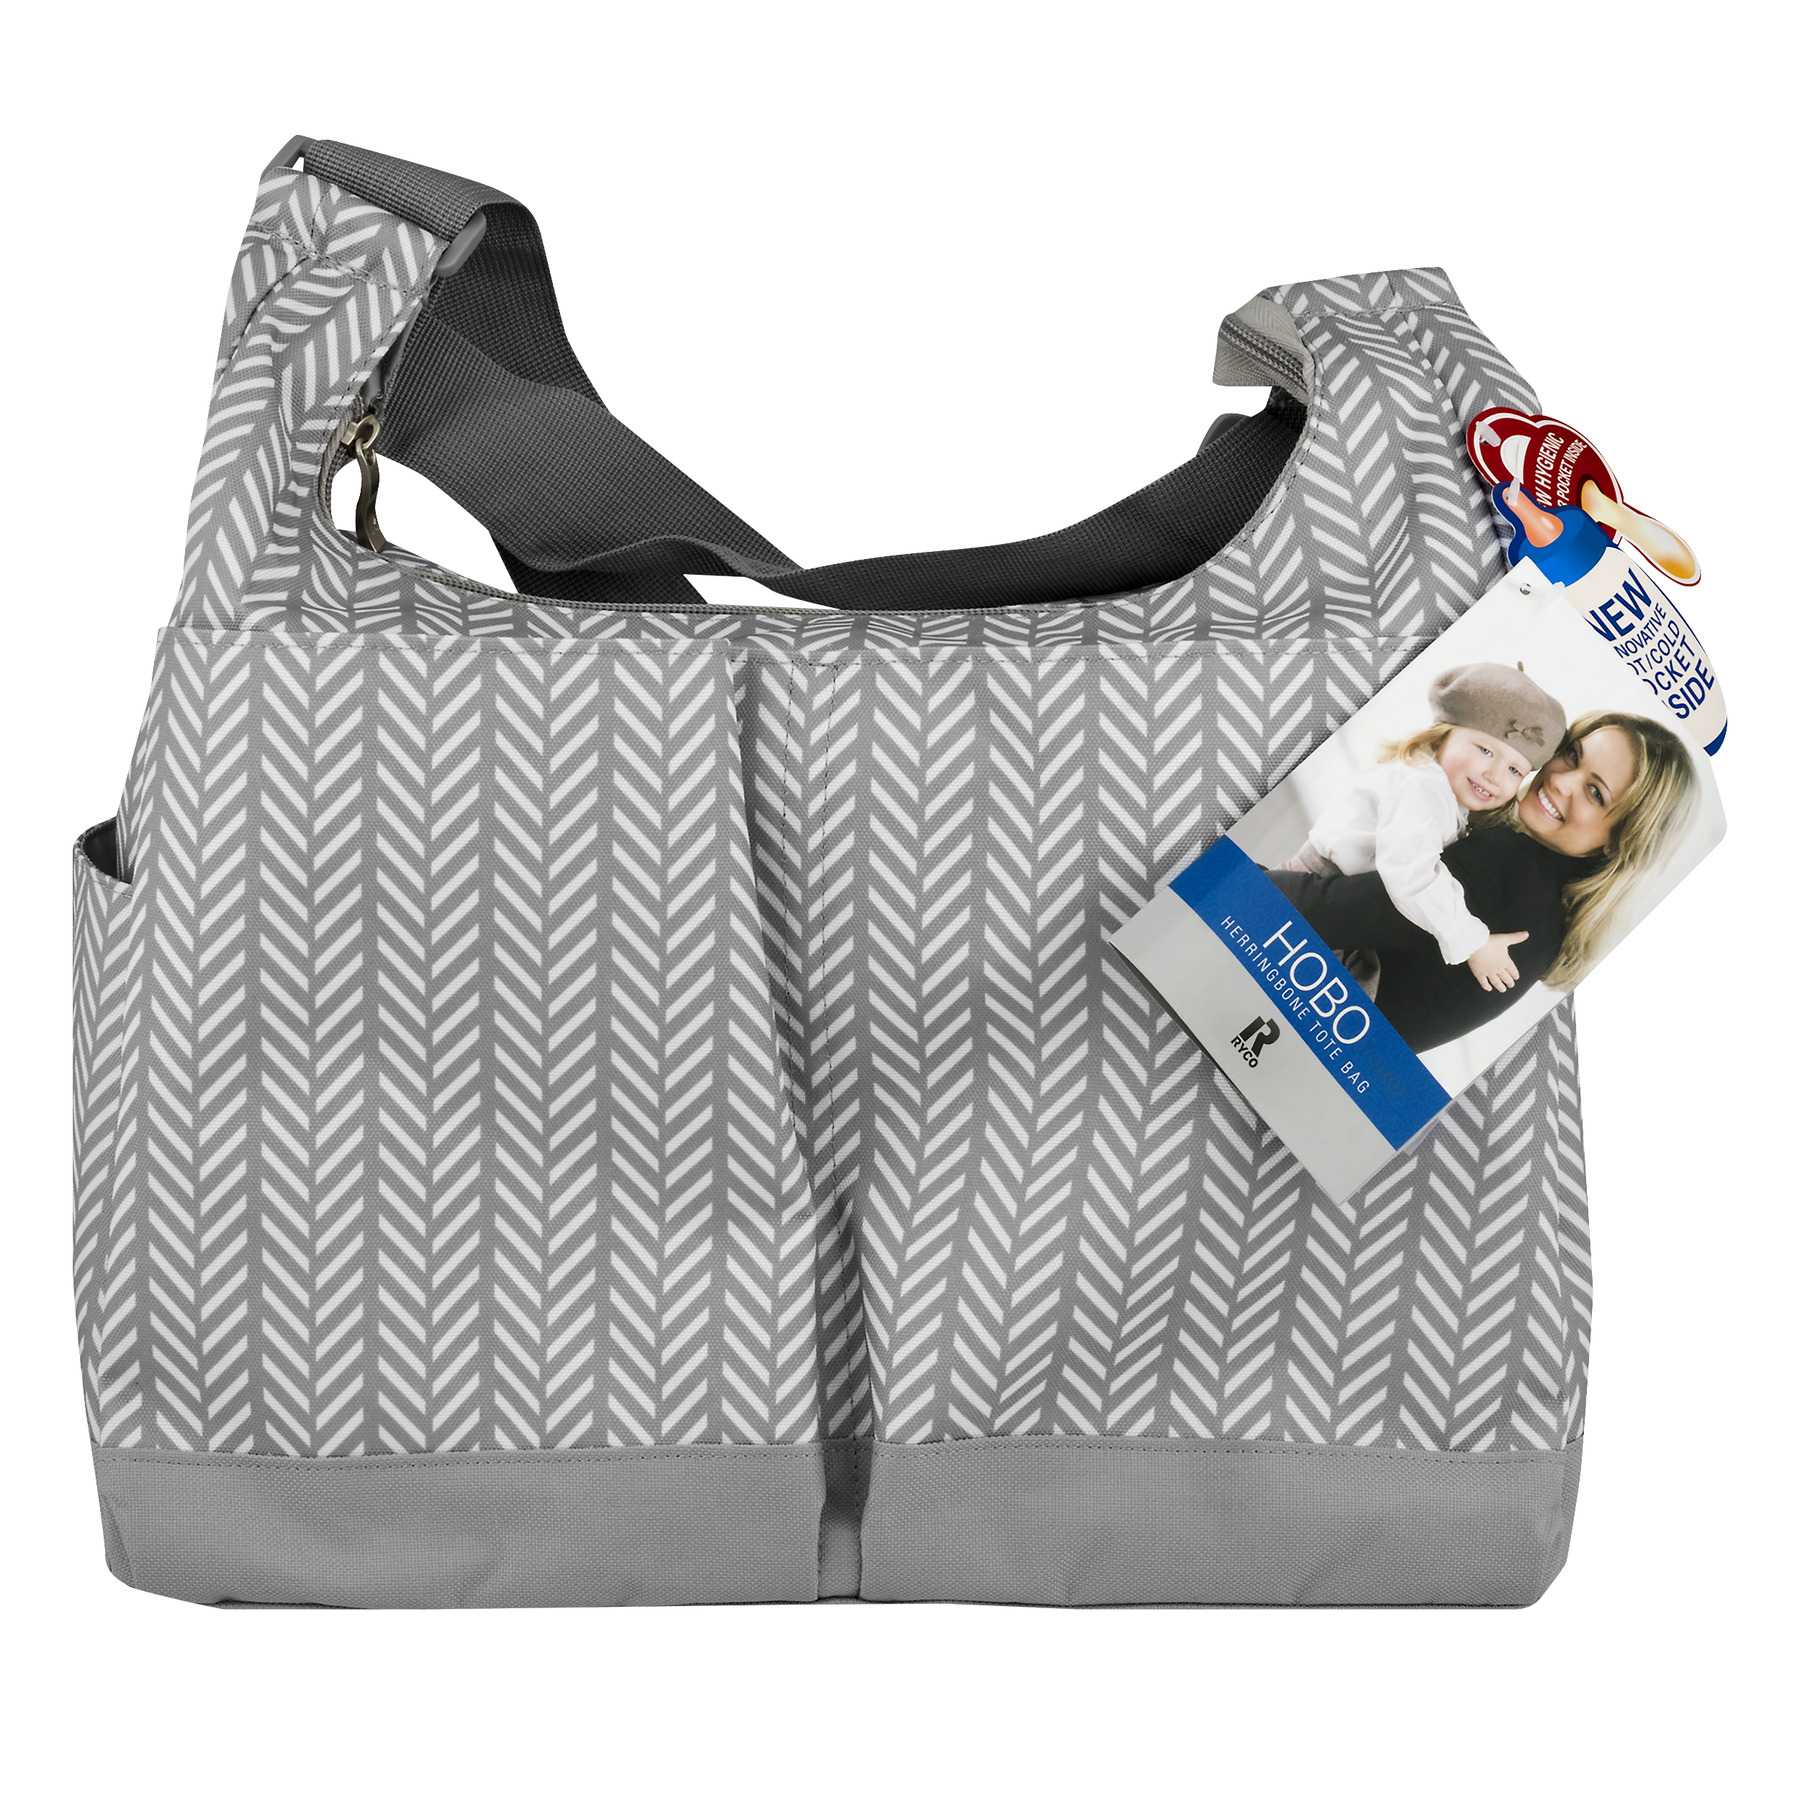 Ryco Tote Bag Herringbone Hobo, 1.0 CT